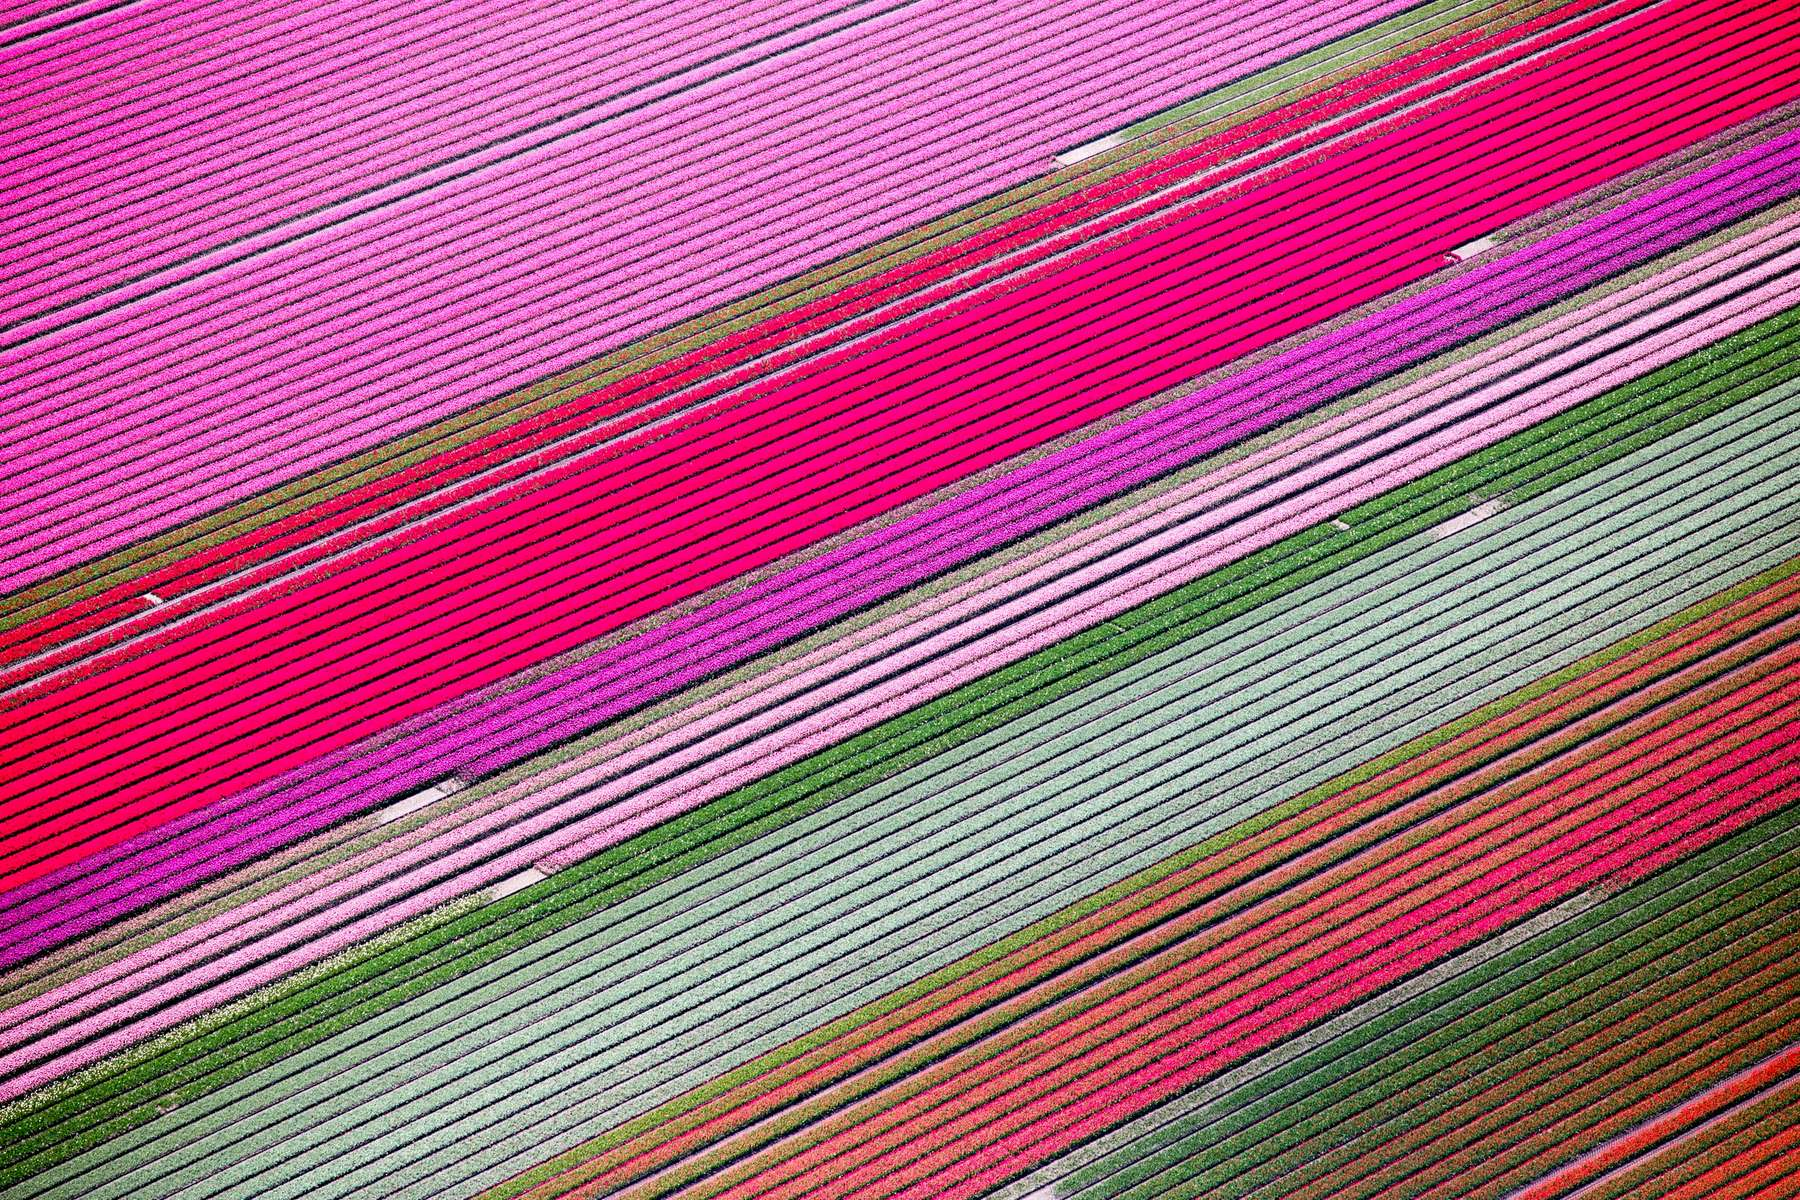 Hues of Pink Tulips, Netherlands 2015 (150502-0195)